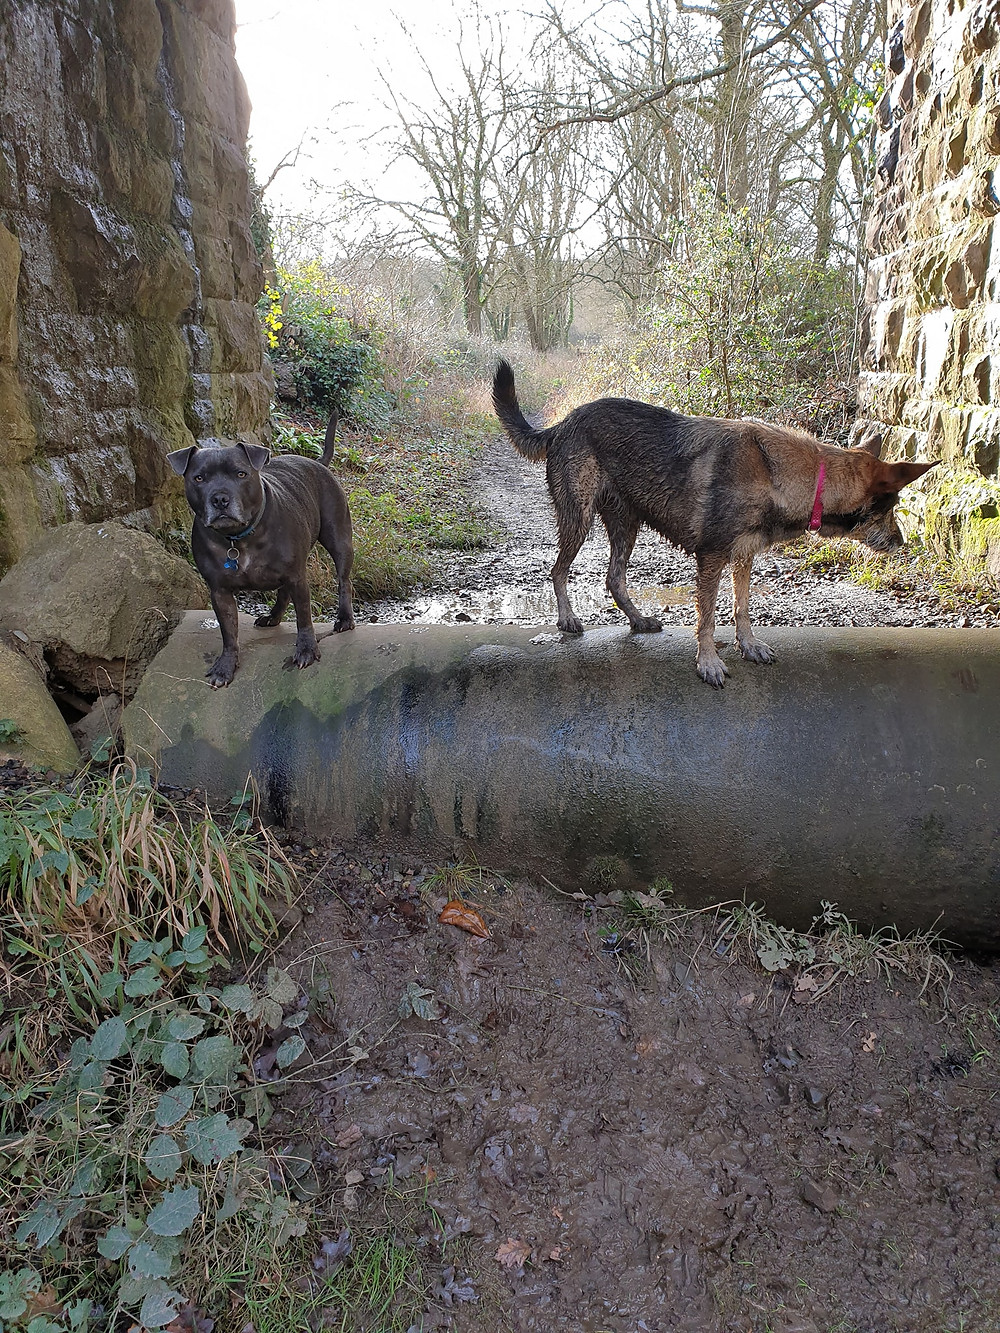 Staffs and Cross breed doing dog parkour on pipe with Time 4 A Walk